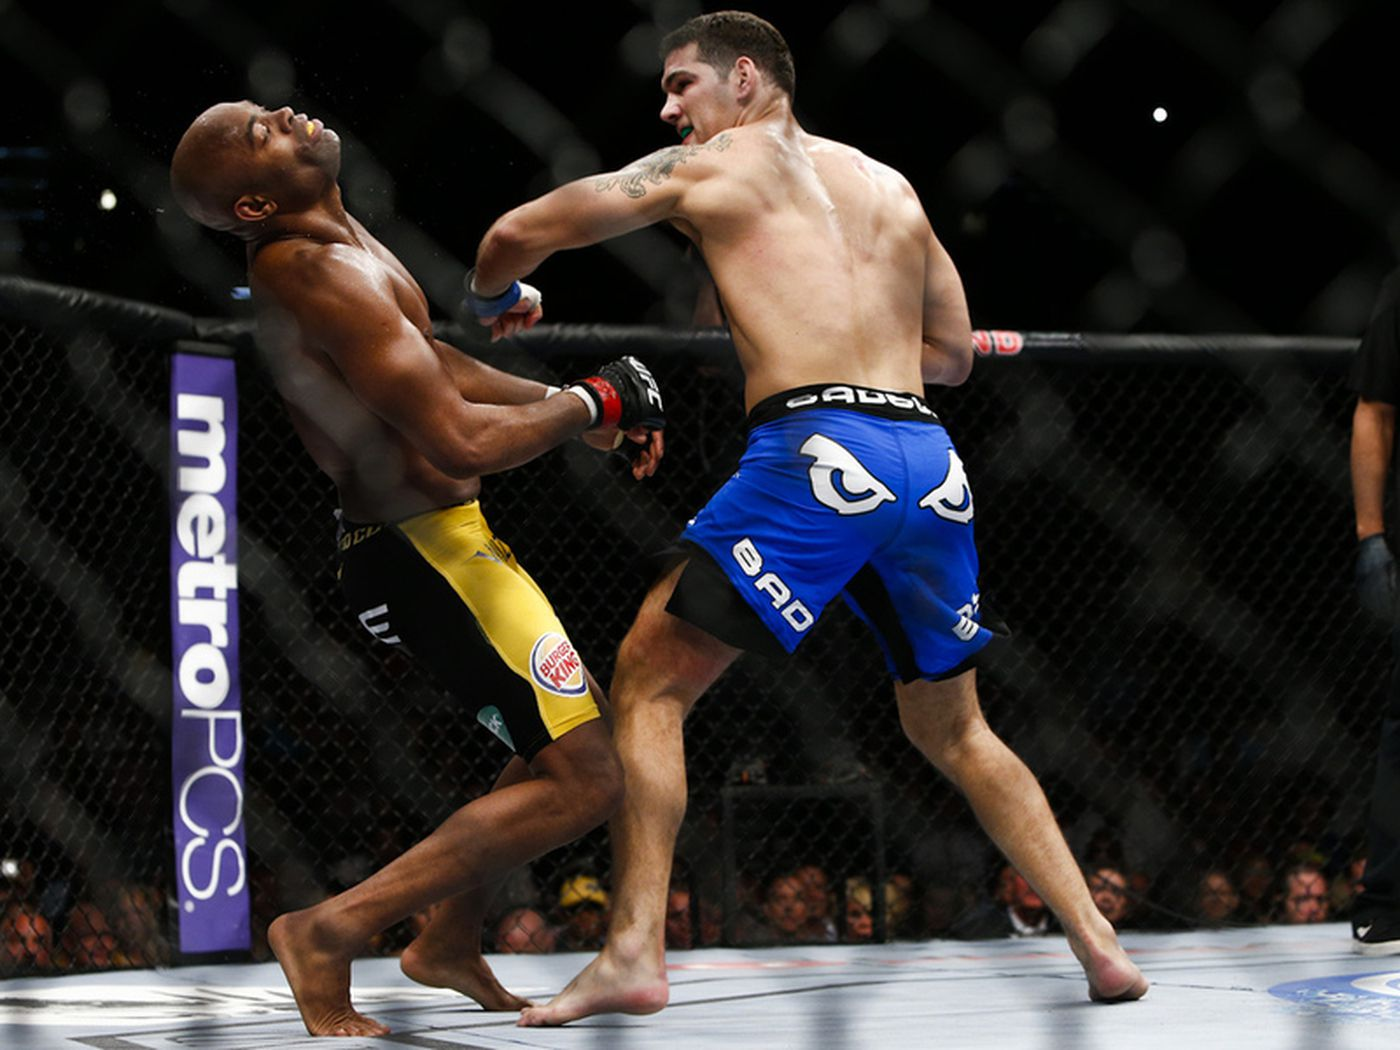 2013 Knockout of the Year: Chris Weidman stuns Anderson Silva at UFC 162 - MMA Fighting